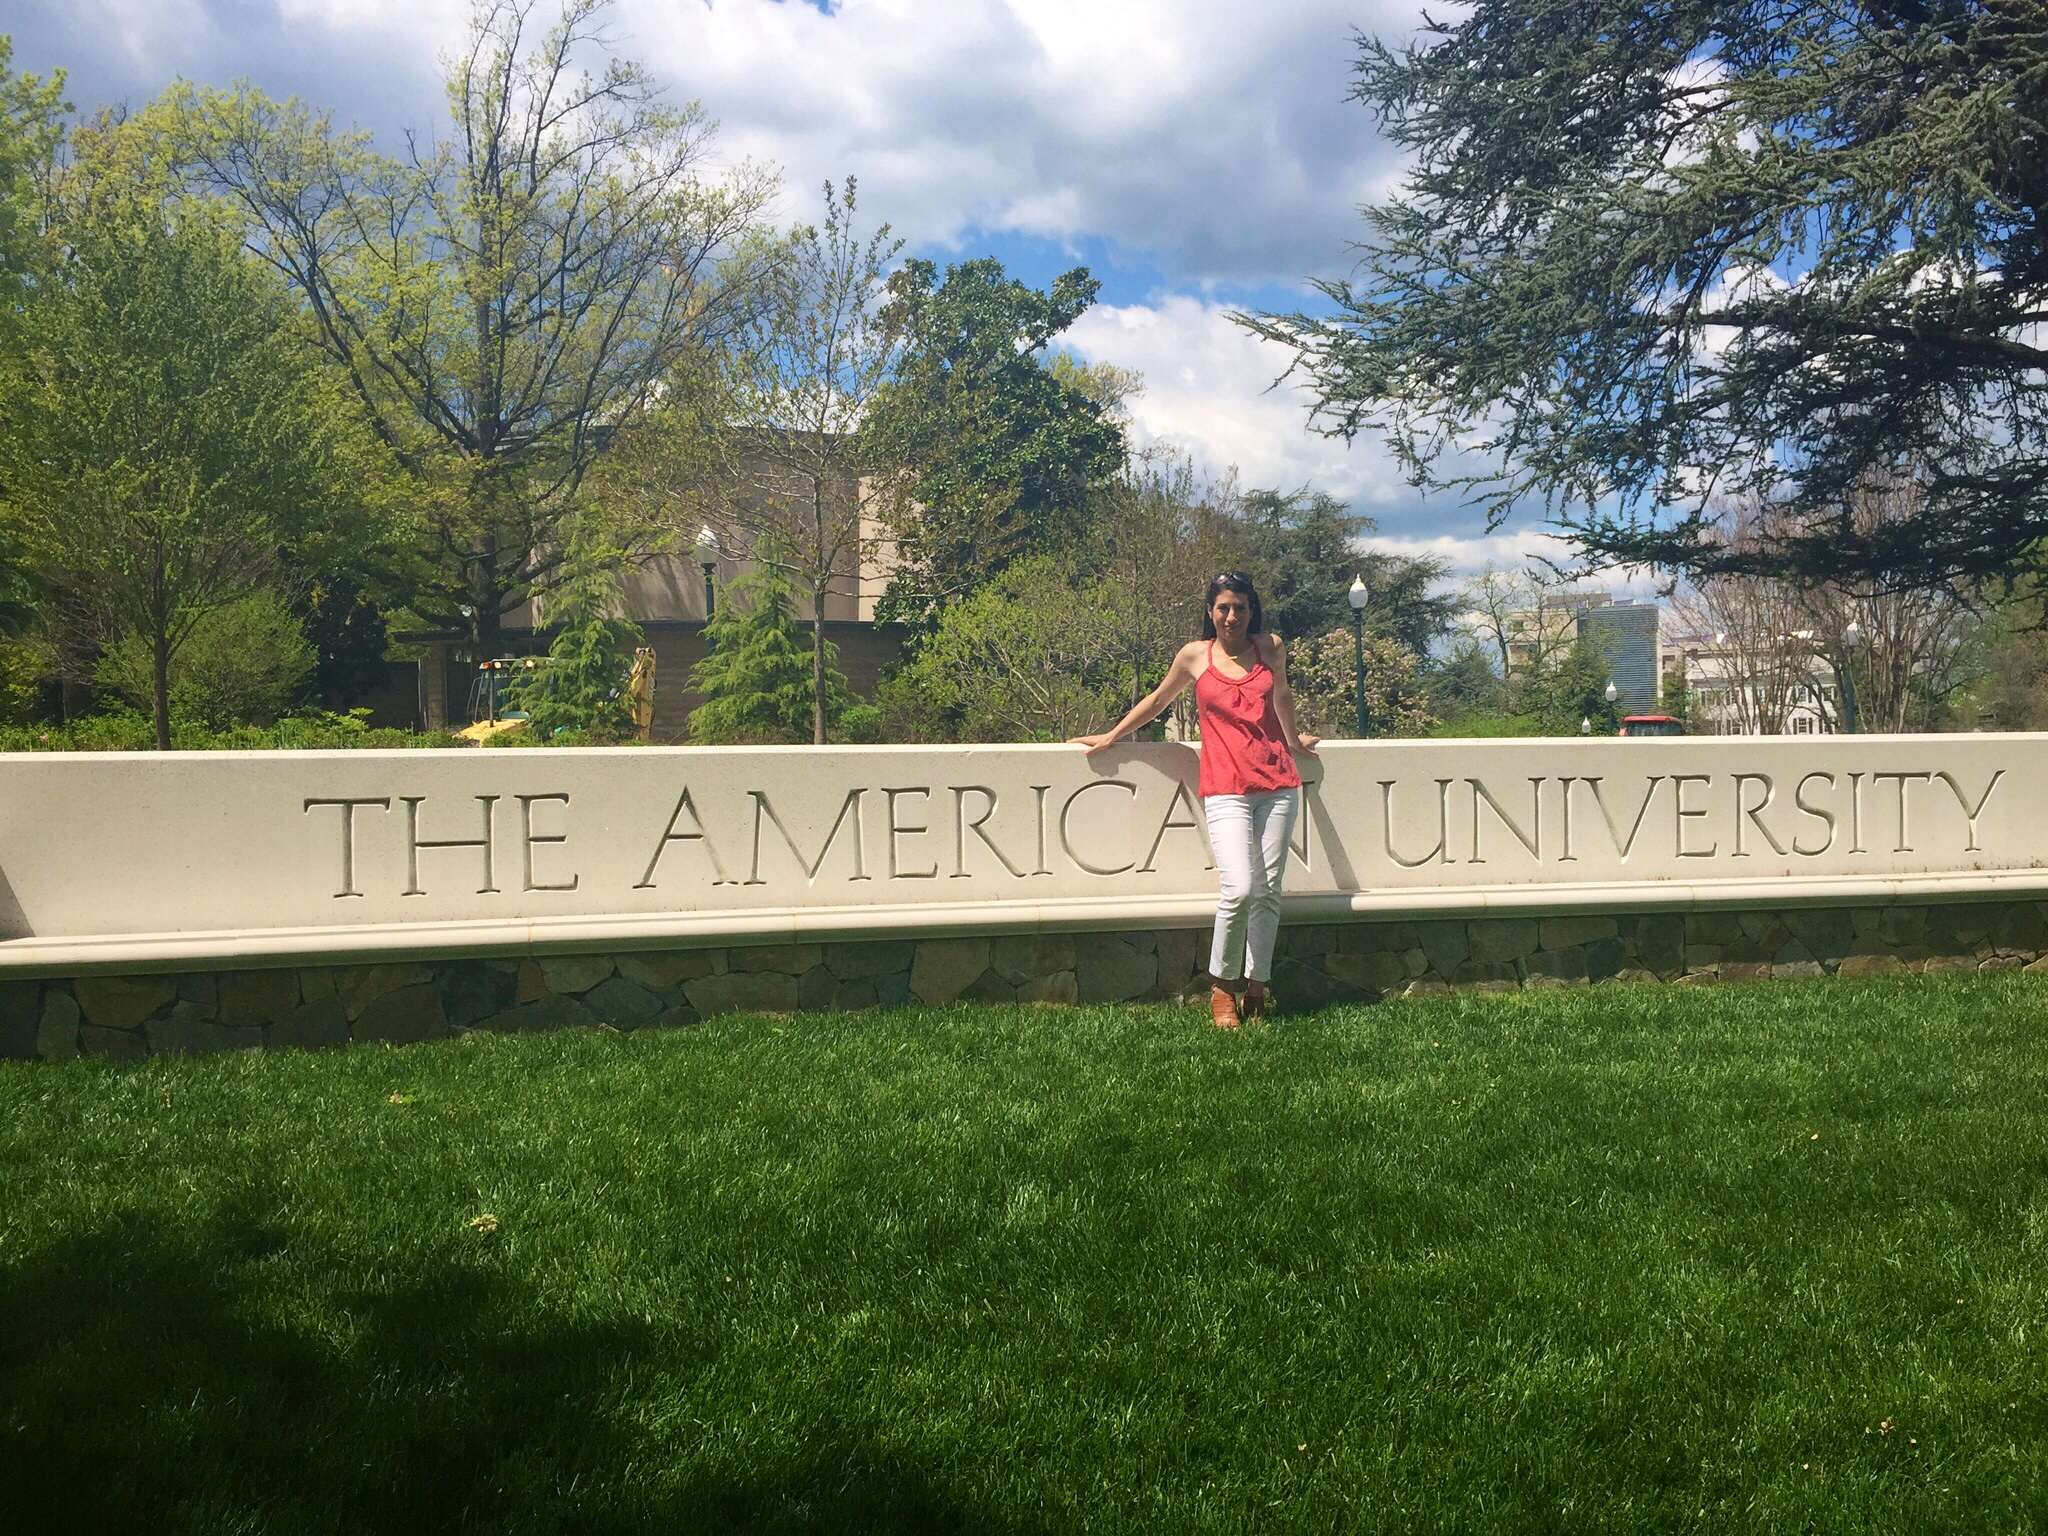 American University, Washington, D.C.